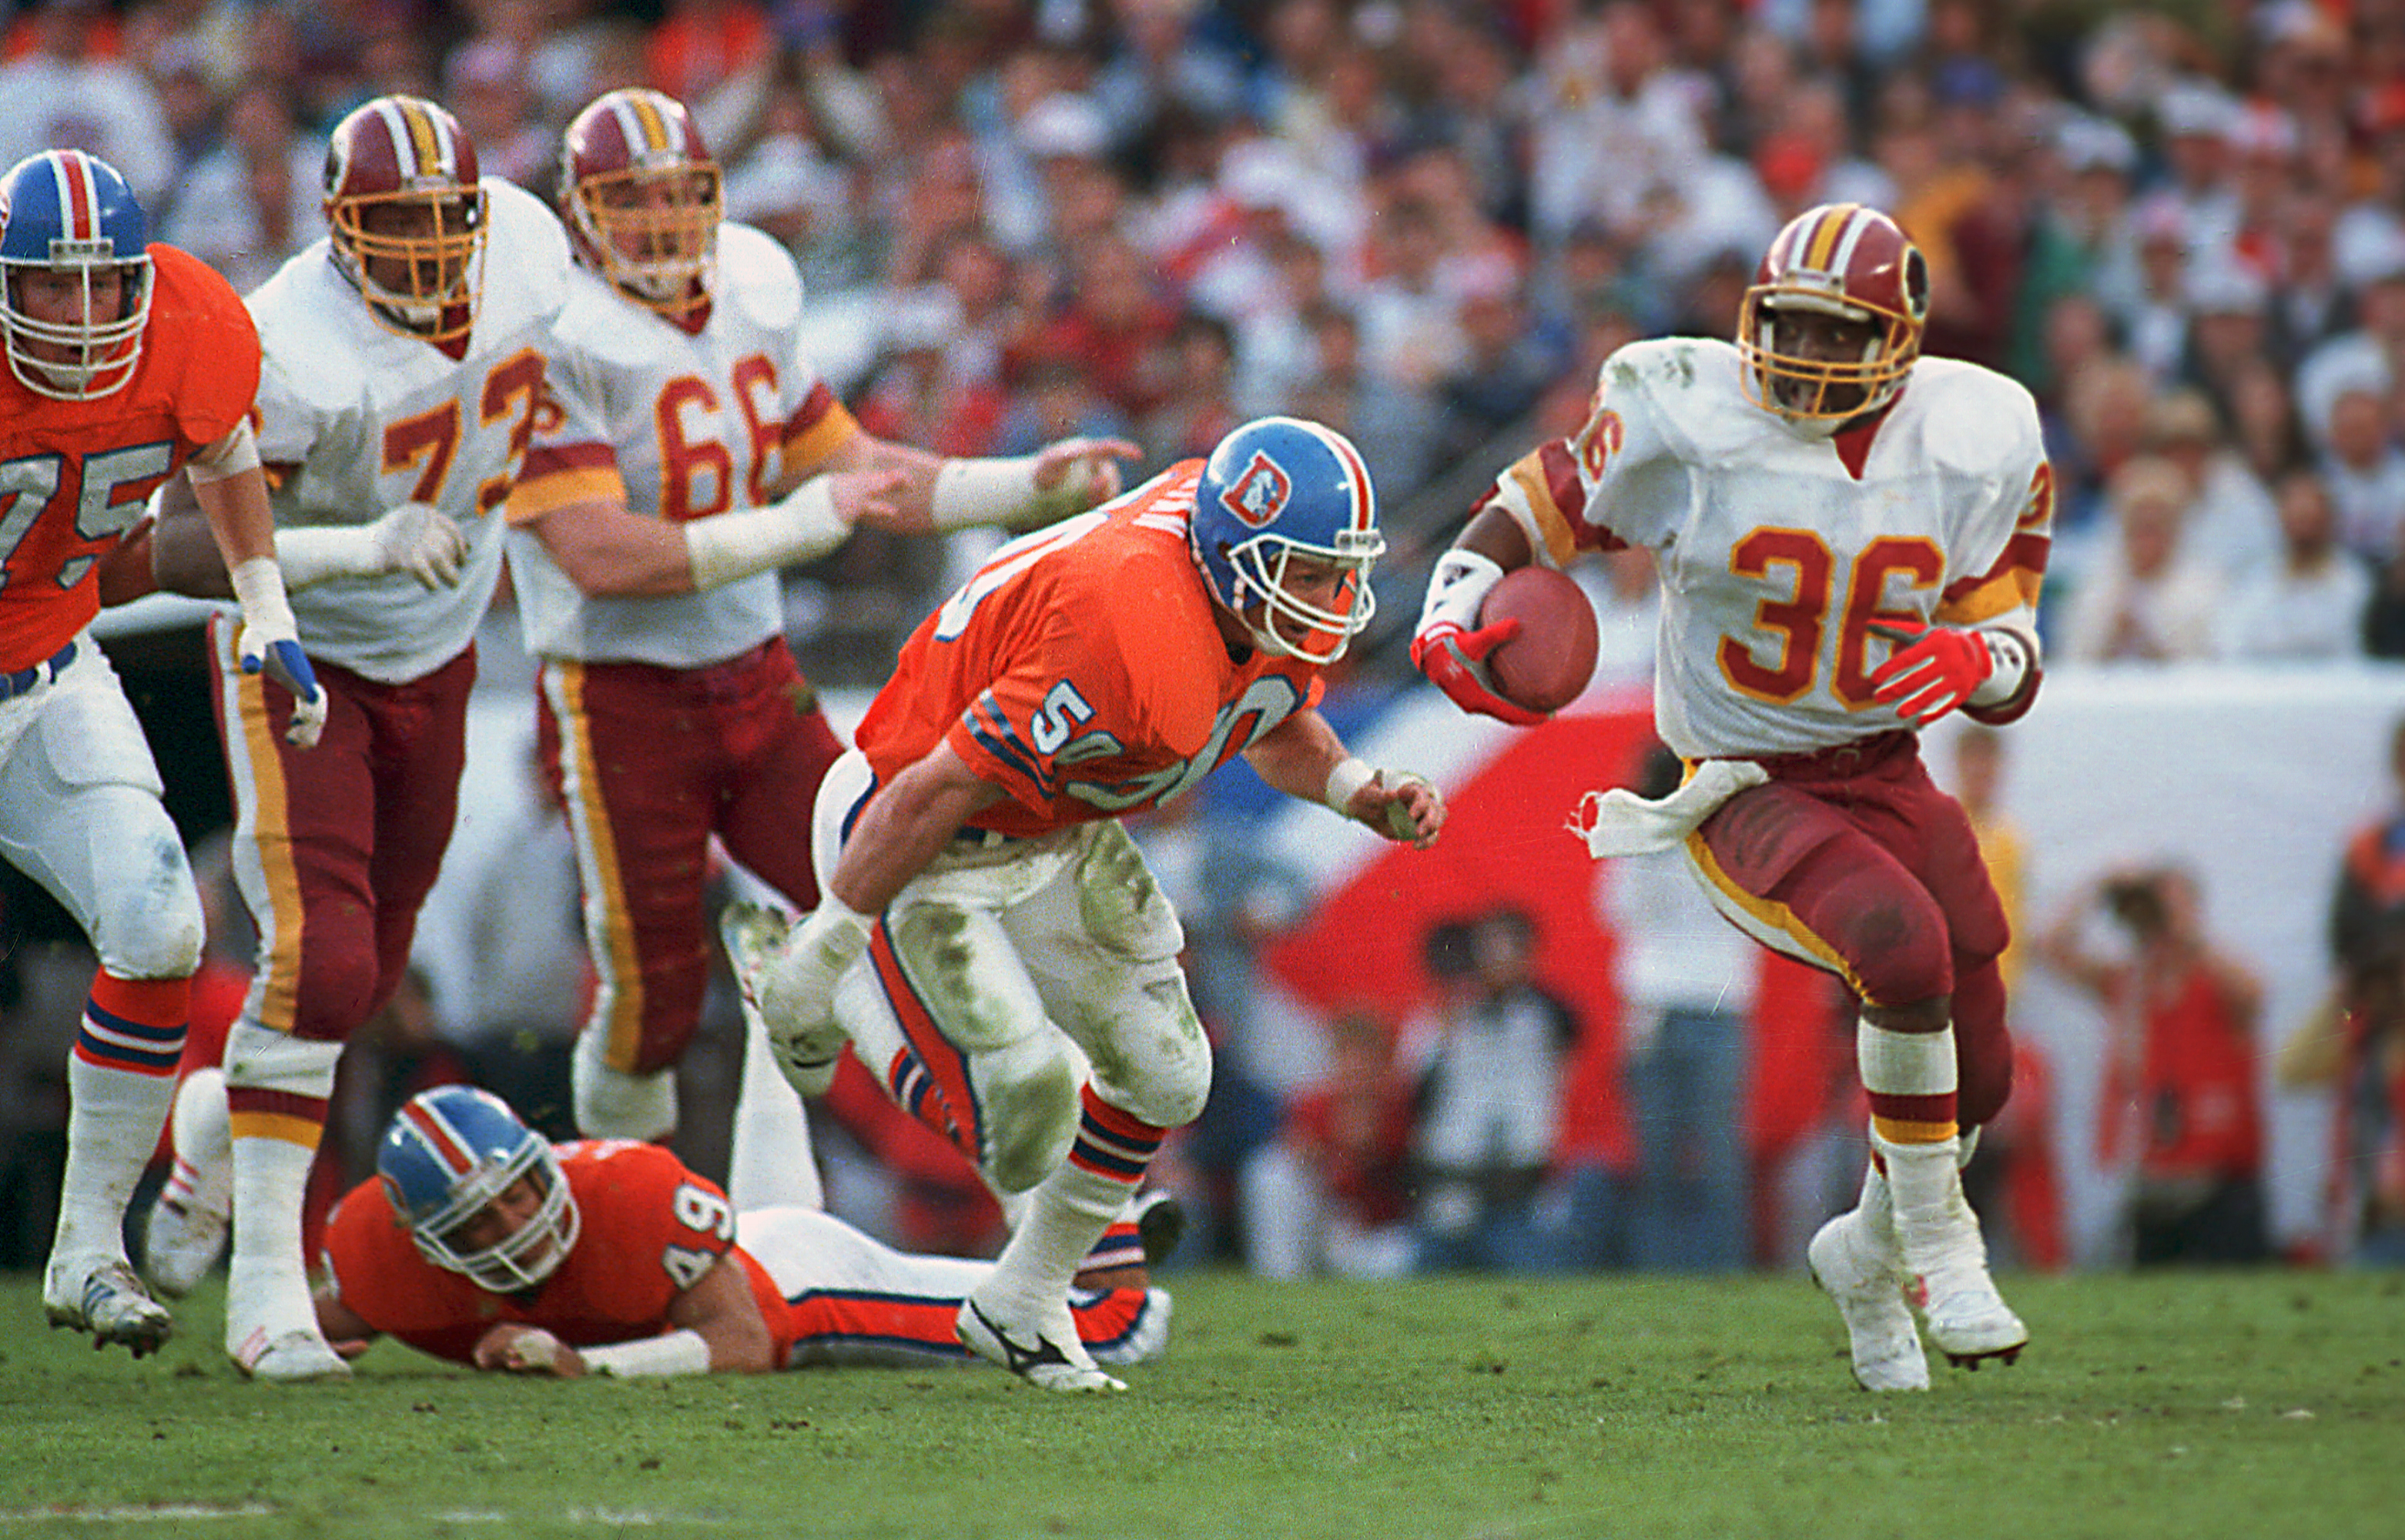 FILE - In this Jan. 31, 1988, file photo, Washington Redskins running back Timmy Smith (36) goes around Denver Broncos linebacker Jim Ryan (50) on a long run in the first quarter of NFL football's Super Bowl XXII in San Diego. Smith ran for a record 204 y